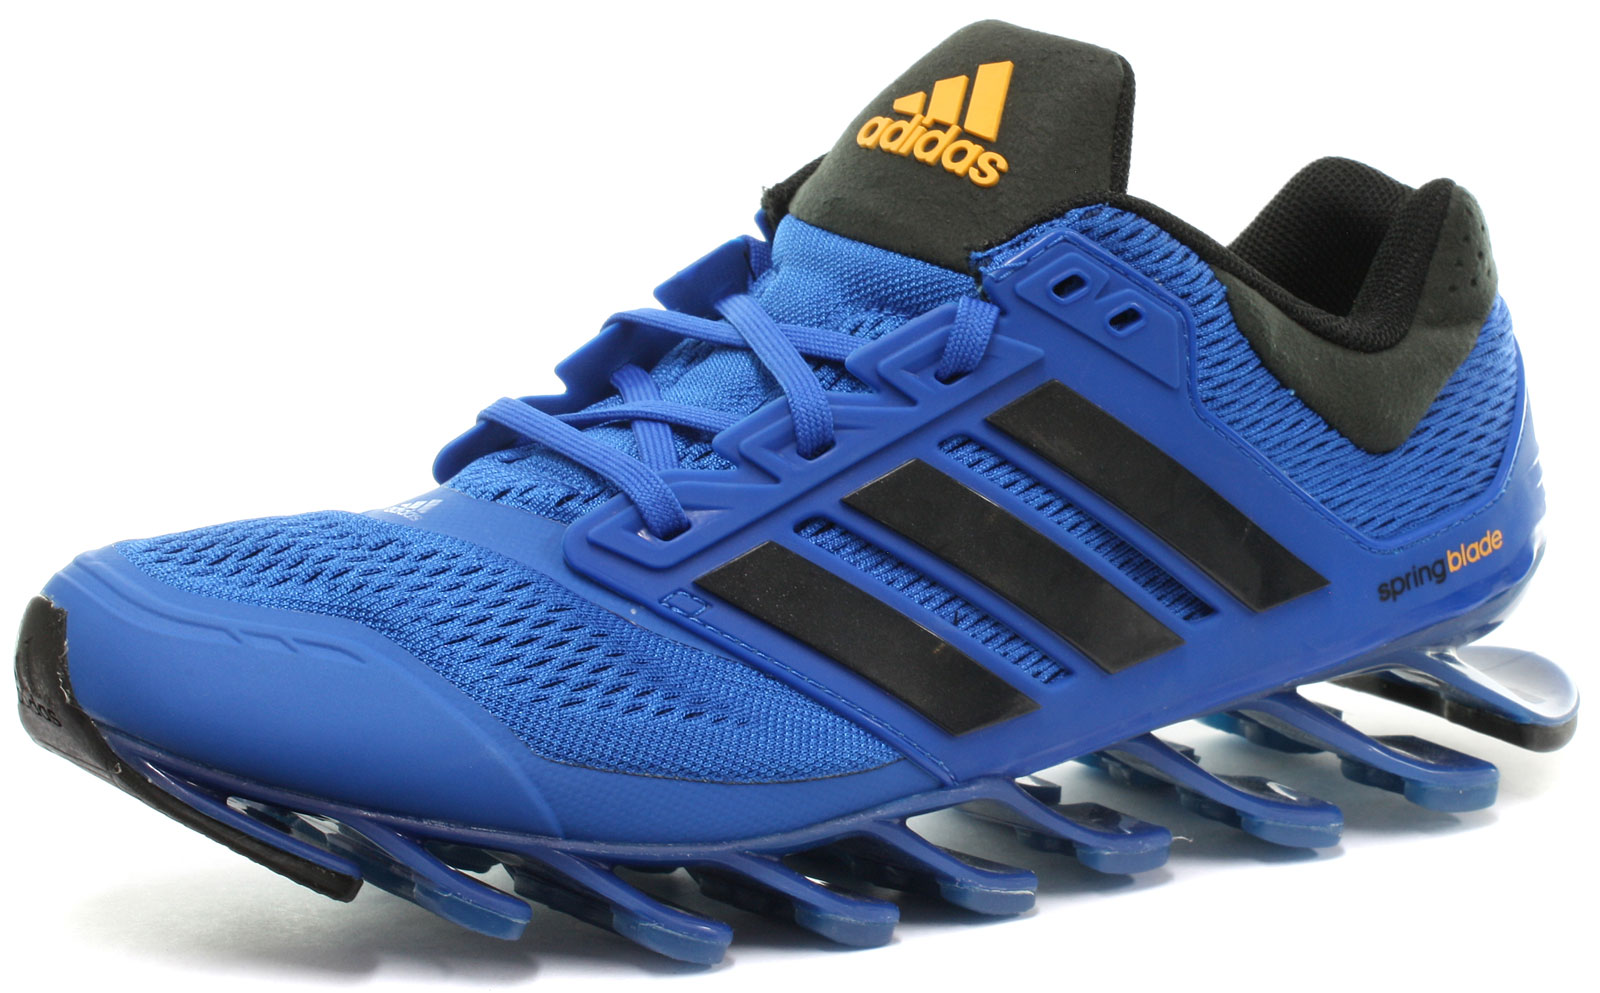 separation shoes d9d42 49805 adidas springblade 5 uomo bianche